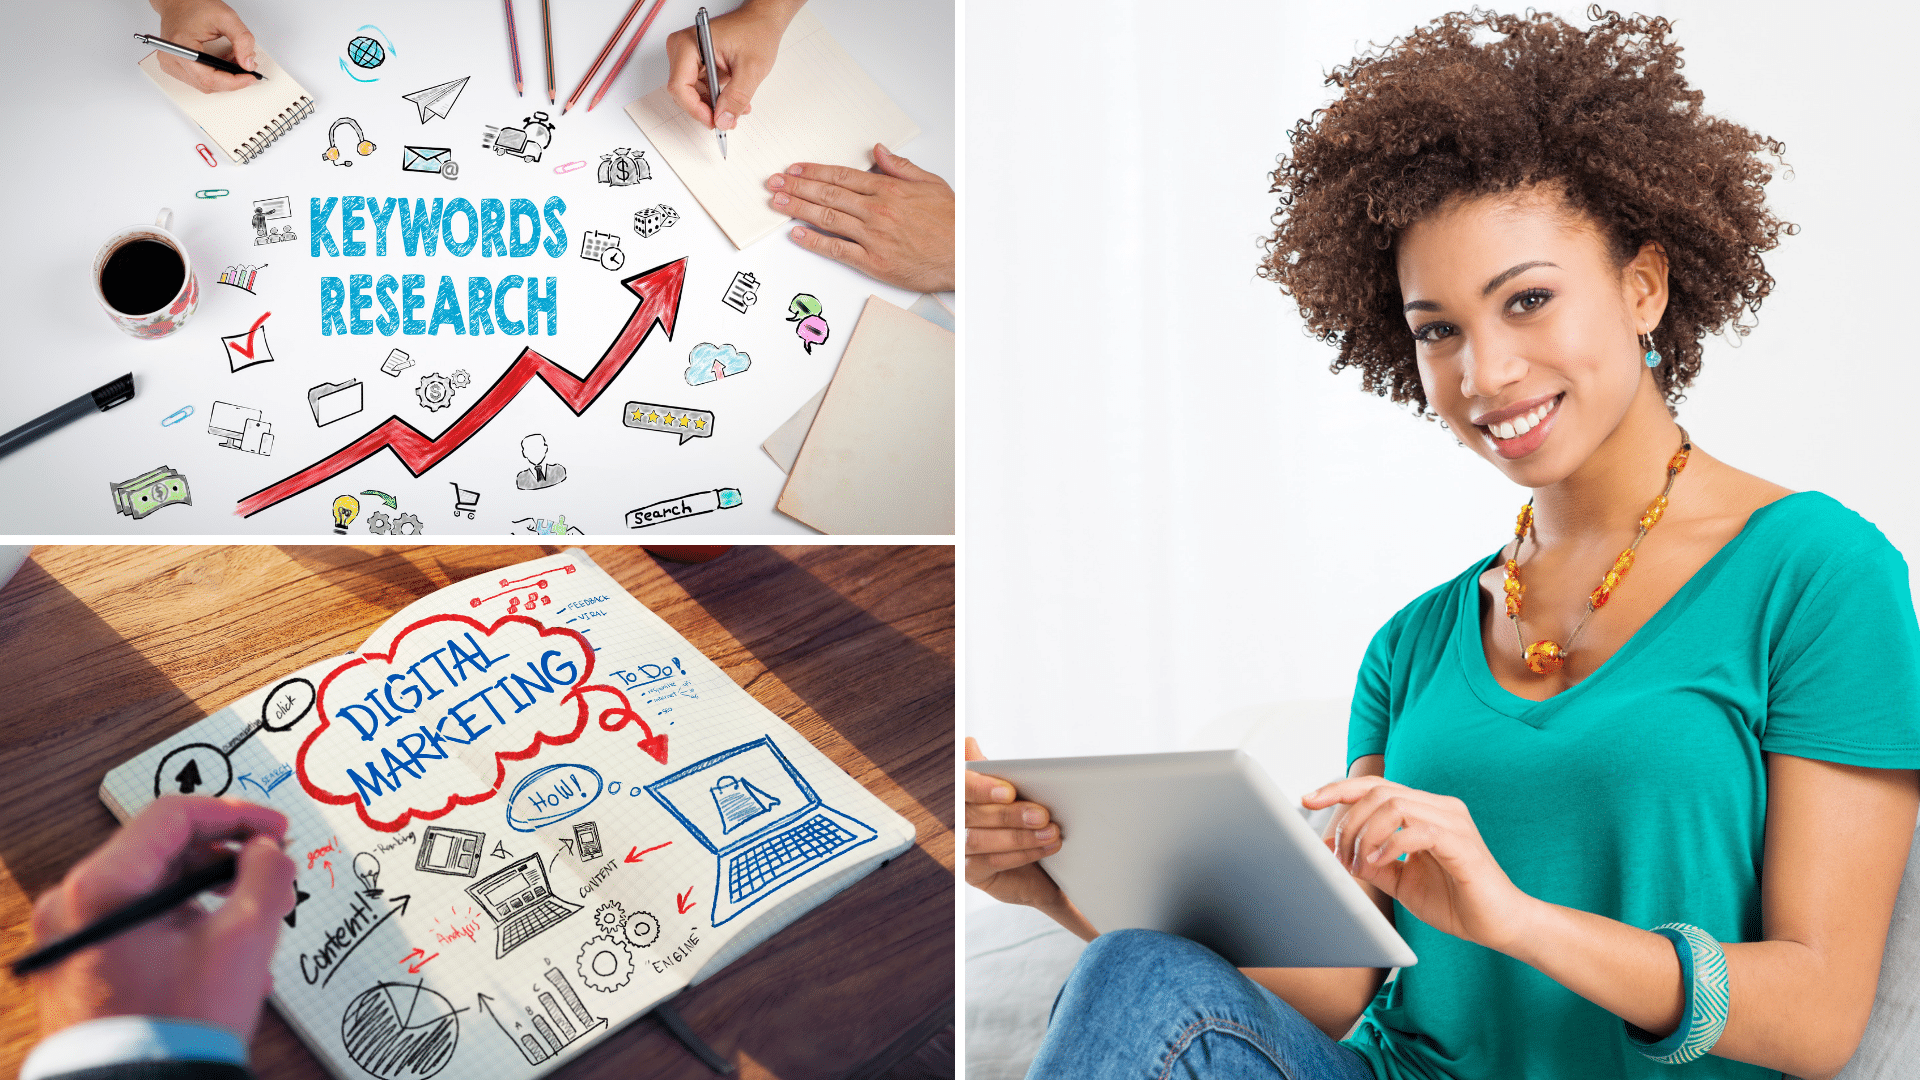 Keywords & Your Digital Marketing Strategy: What Do You Need to Know?